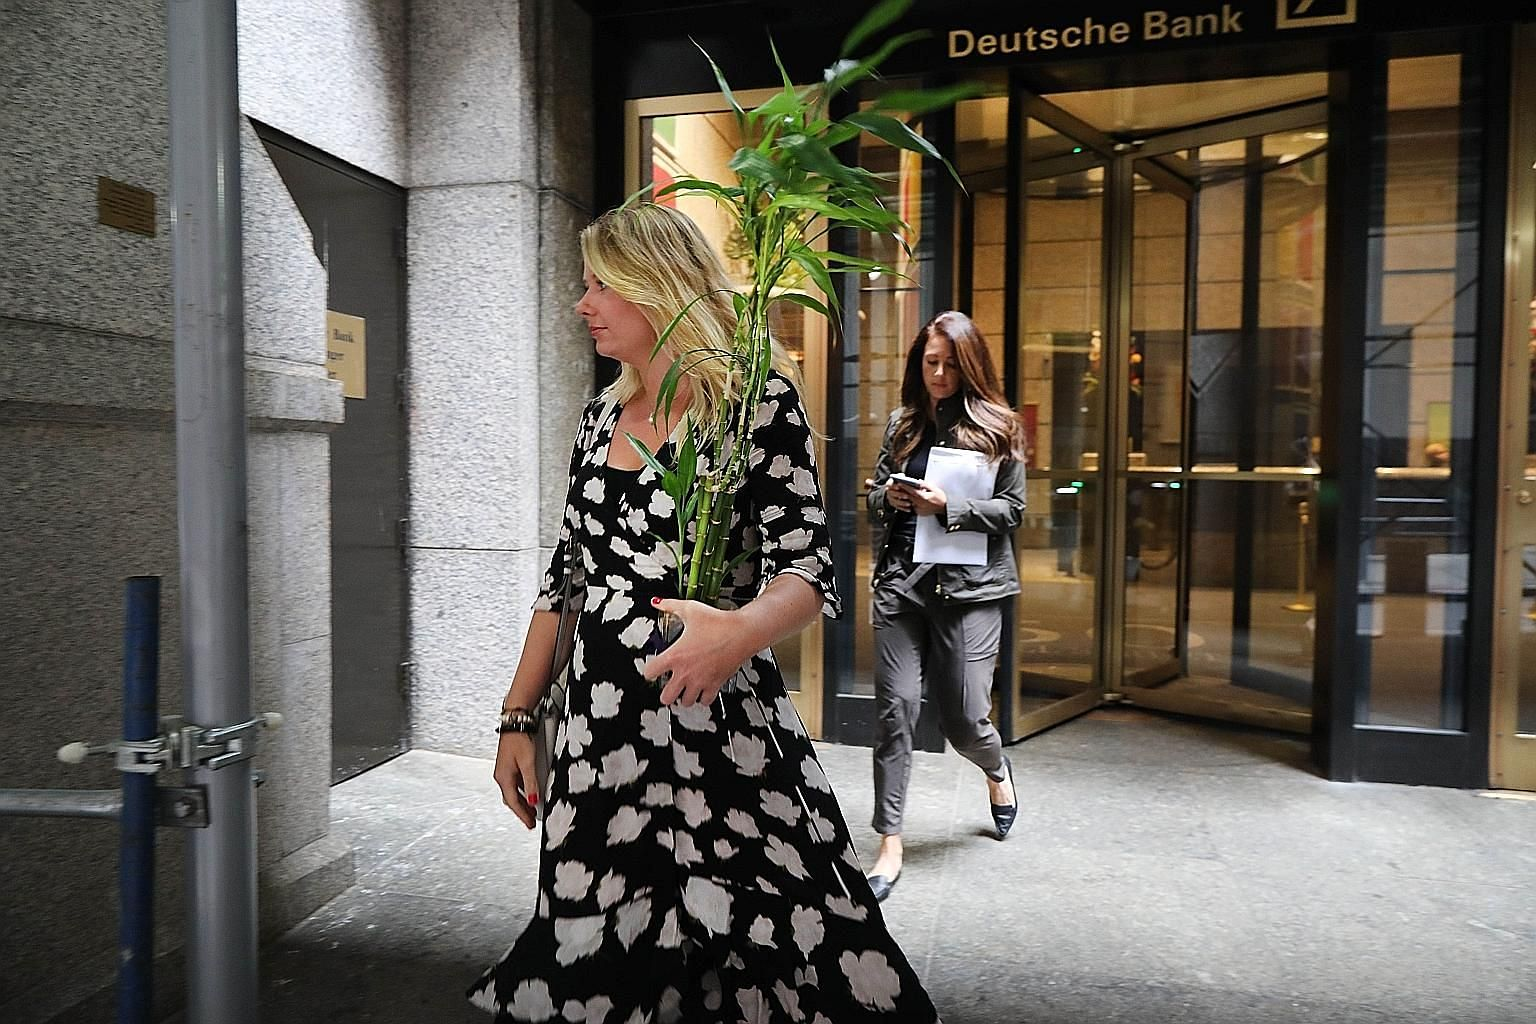 Deutsche Bank staff leaving the New York headquarters after being laid off on Monday. Disloyalty is so embedded at investment banks that the habit is hard to break for both employer and staff. Traders demand big bonuses and threaten to leave for high